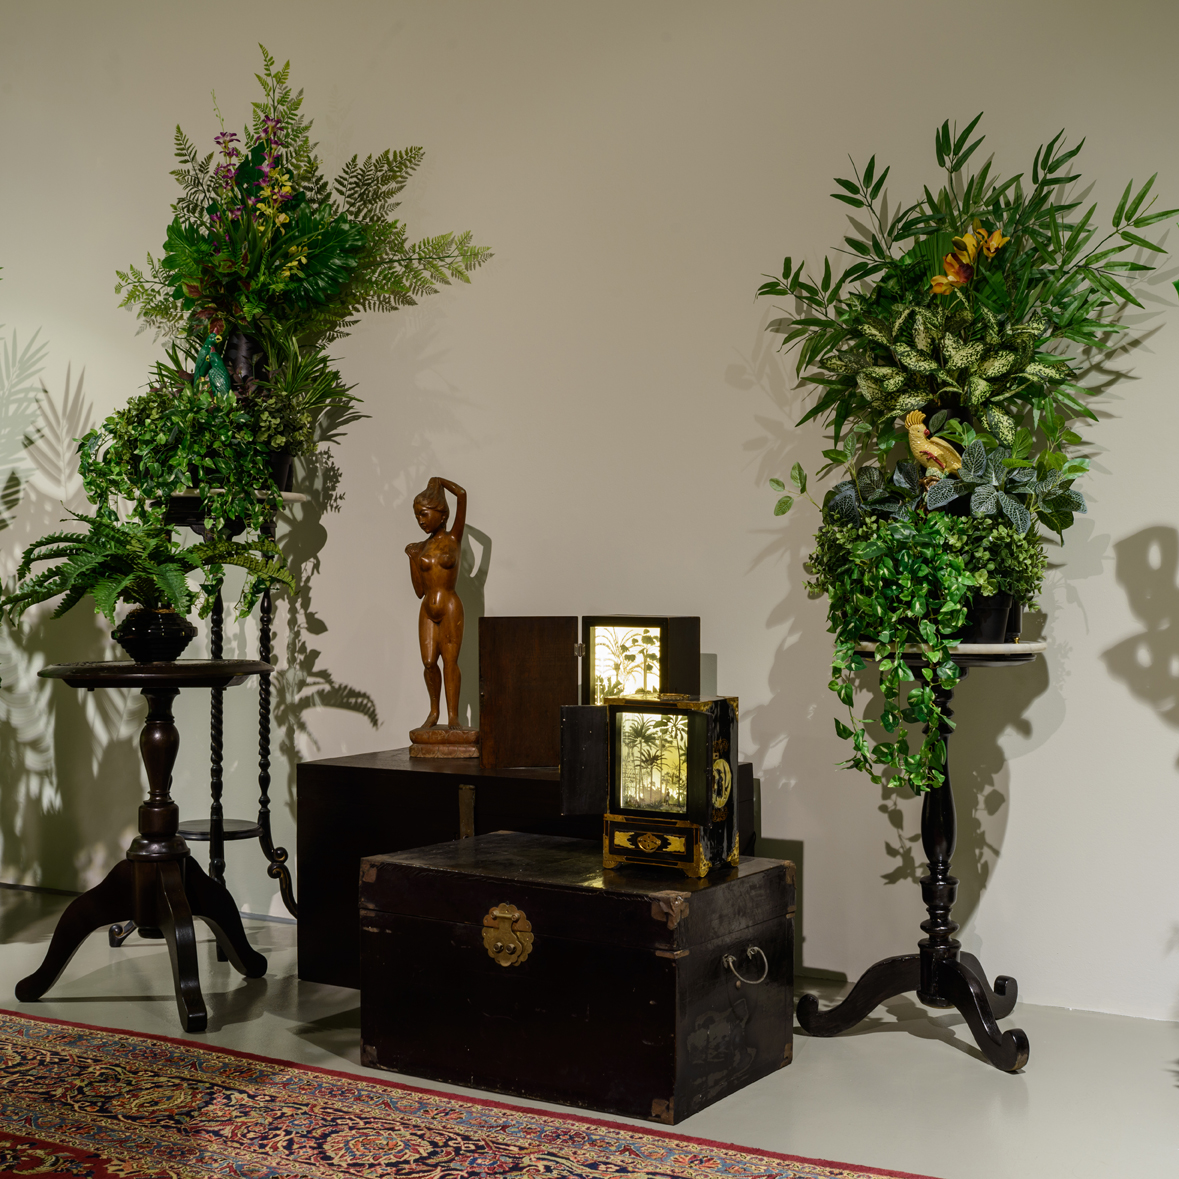 Installation View of  From the Tropics, With Love (2.4)  2016 Antique/reproduction antique wood and marble furnitures, artificial flowers, vases, pots and three ceramic birds Dimensions variable Photo Credit:Fotograffiti (John Yuen)